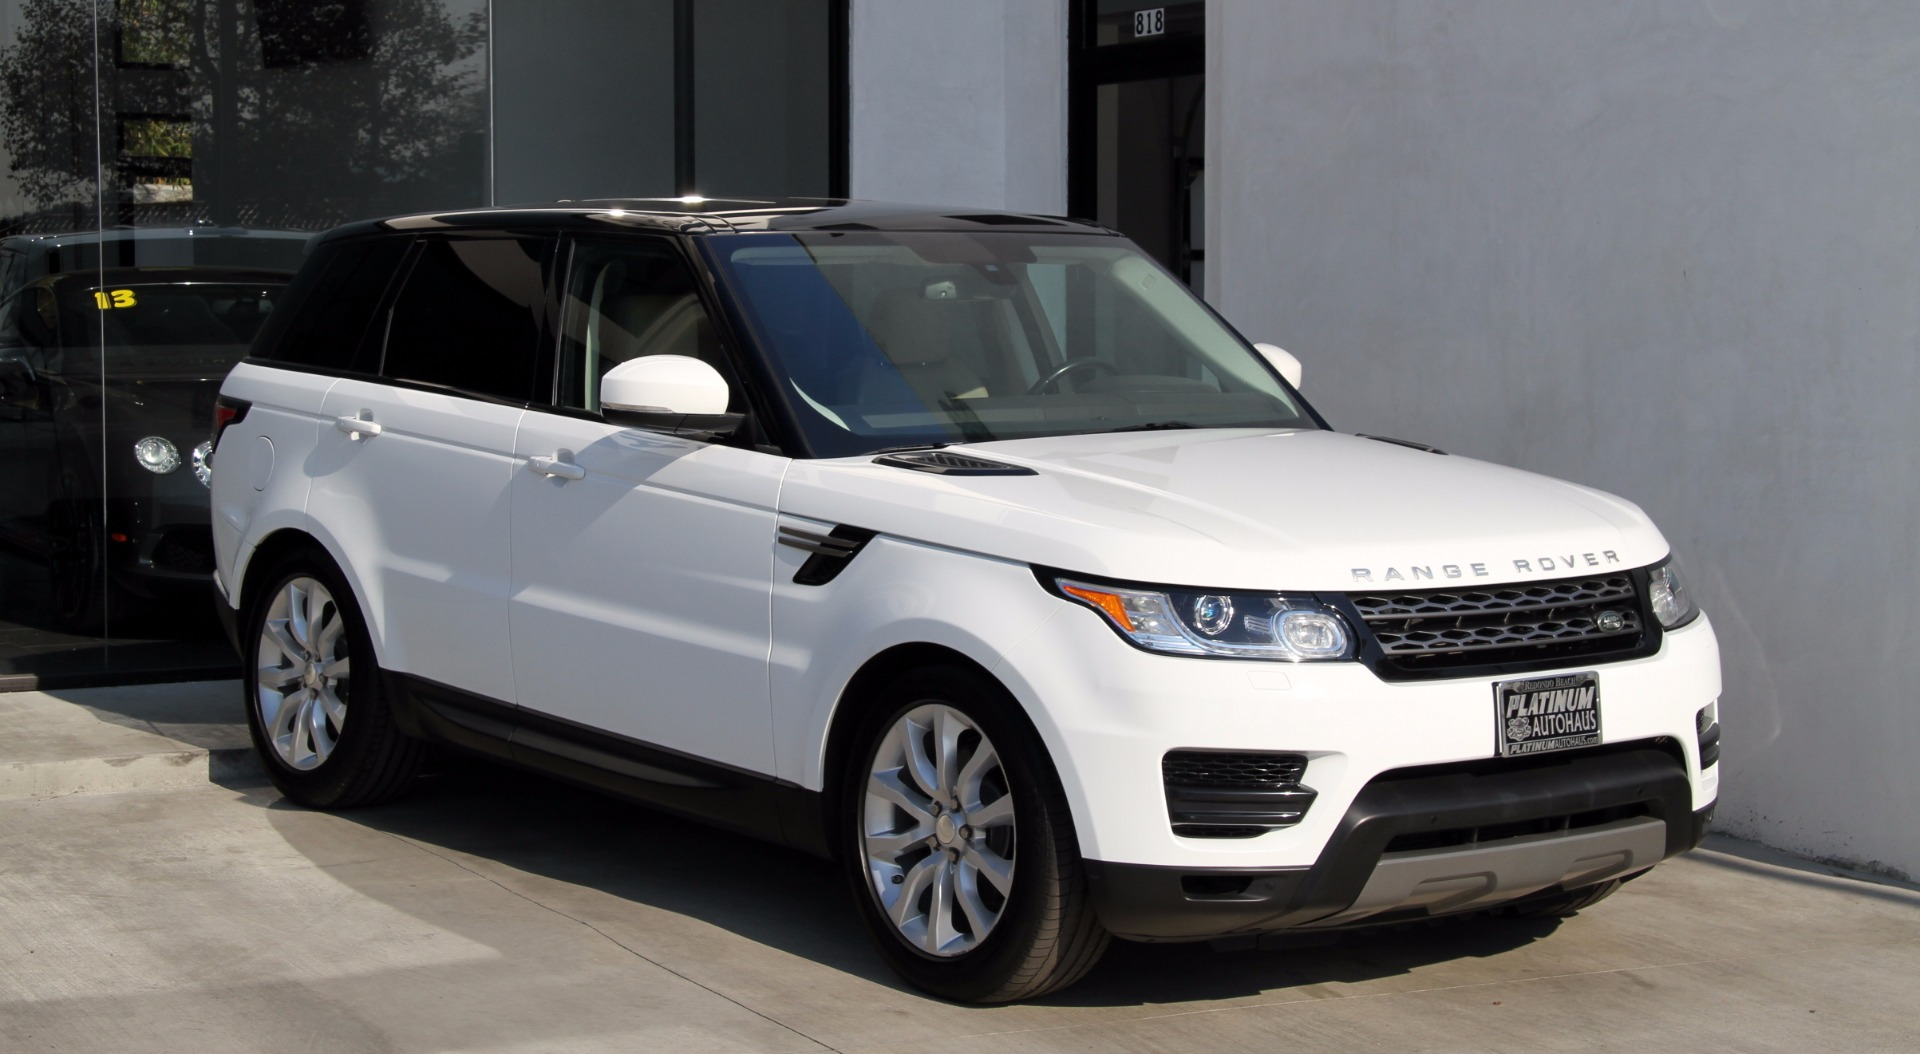 2015 land rover range rover sport se stock 5964 for sale near redondo beach ca ca land - Land rover garage near me ...